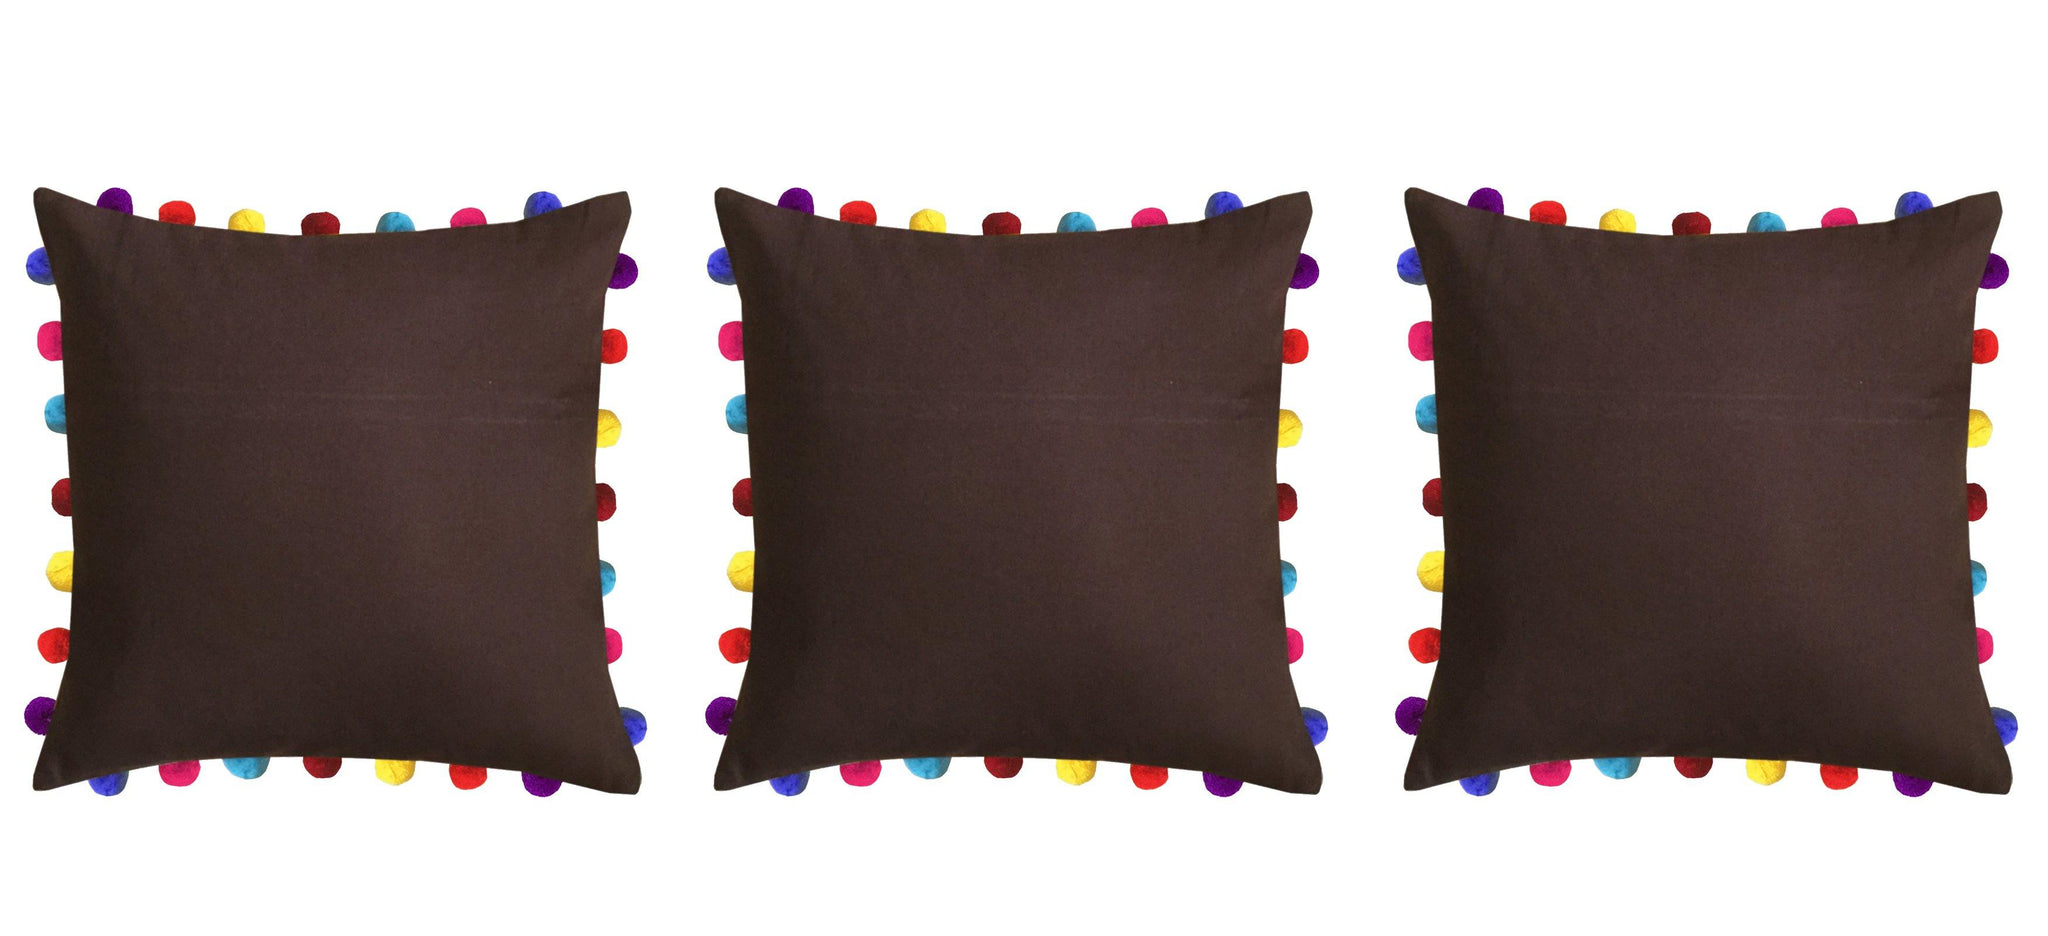 "Lushomes French Roast Cushion Cover with Colorful Pom Poms (3 pcs, 20 x 20"") - Lushomes"